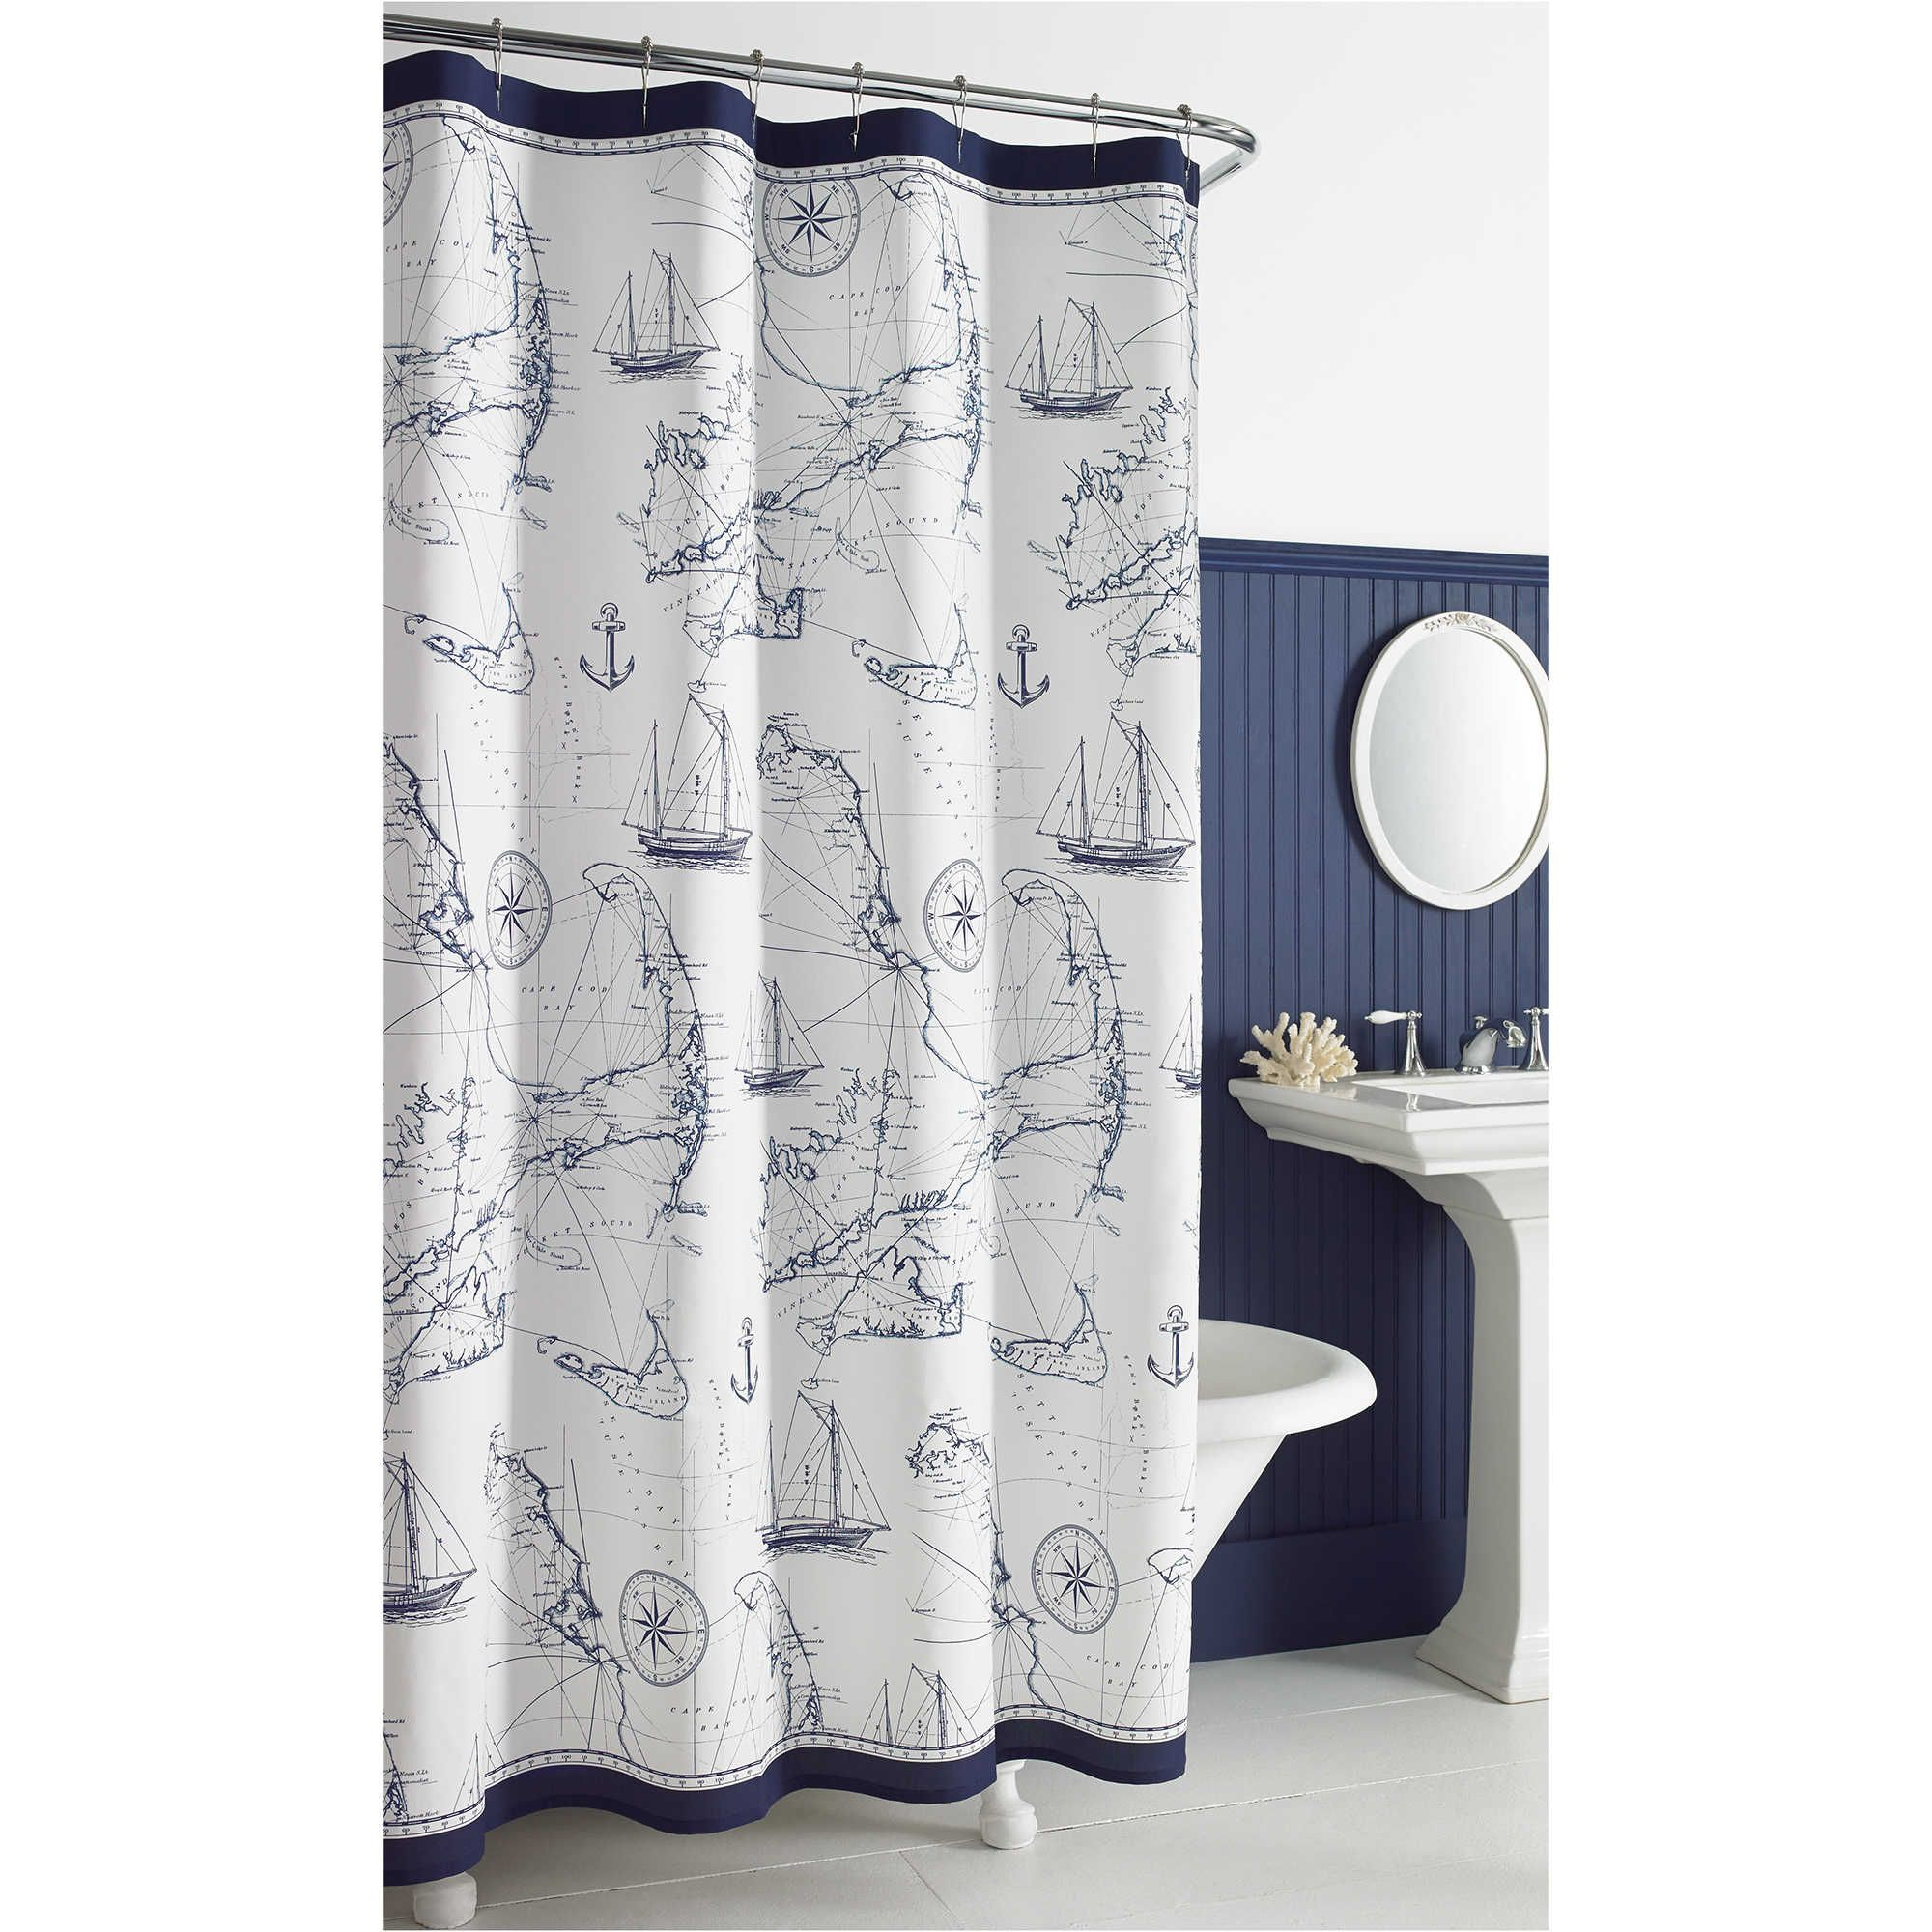 Cape island inch x inch shower curtain nautical christmas